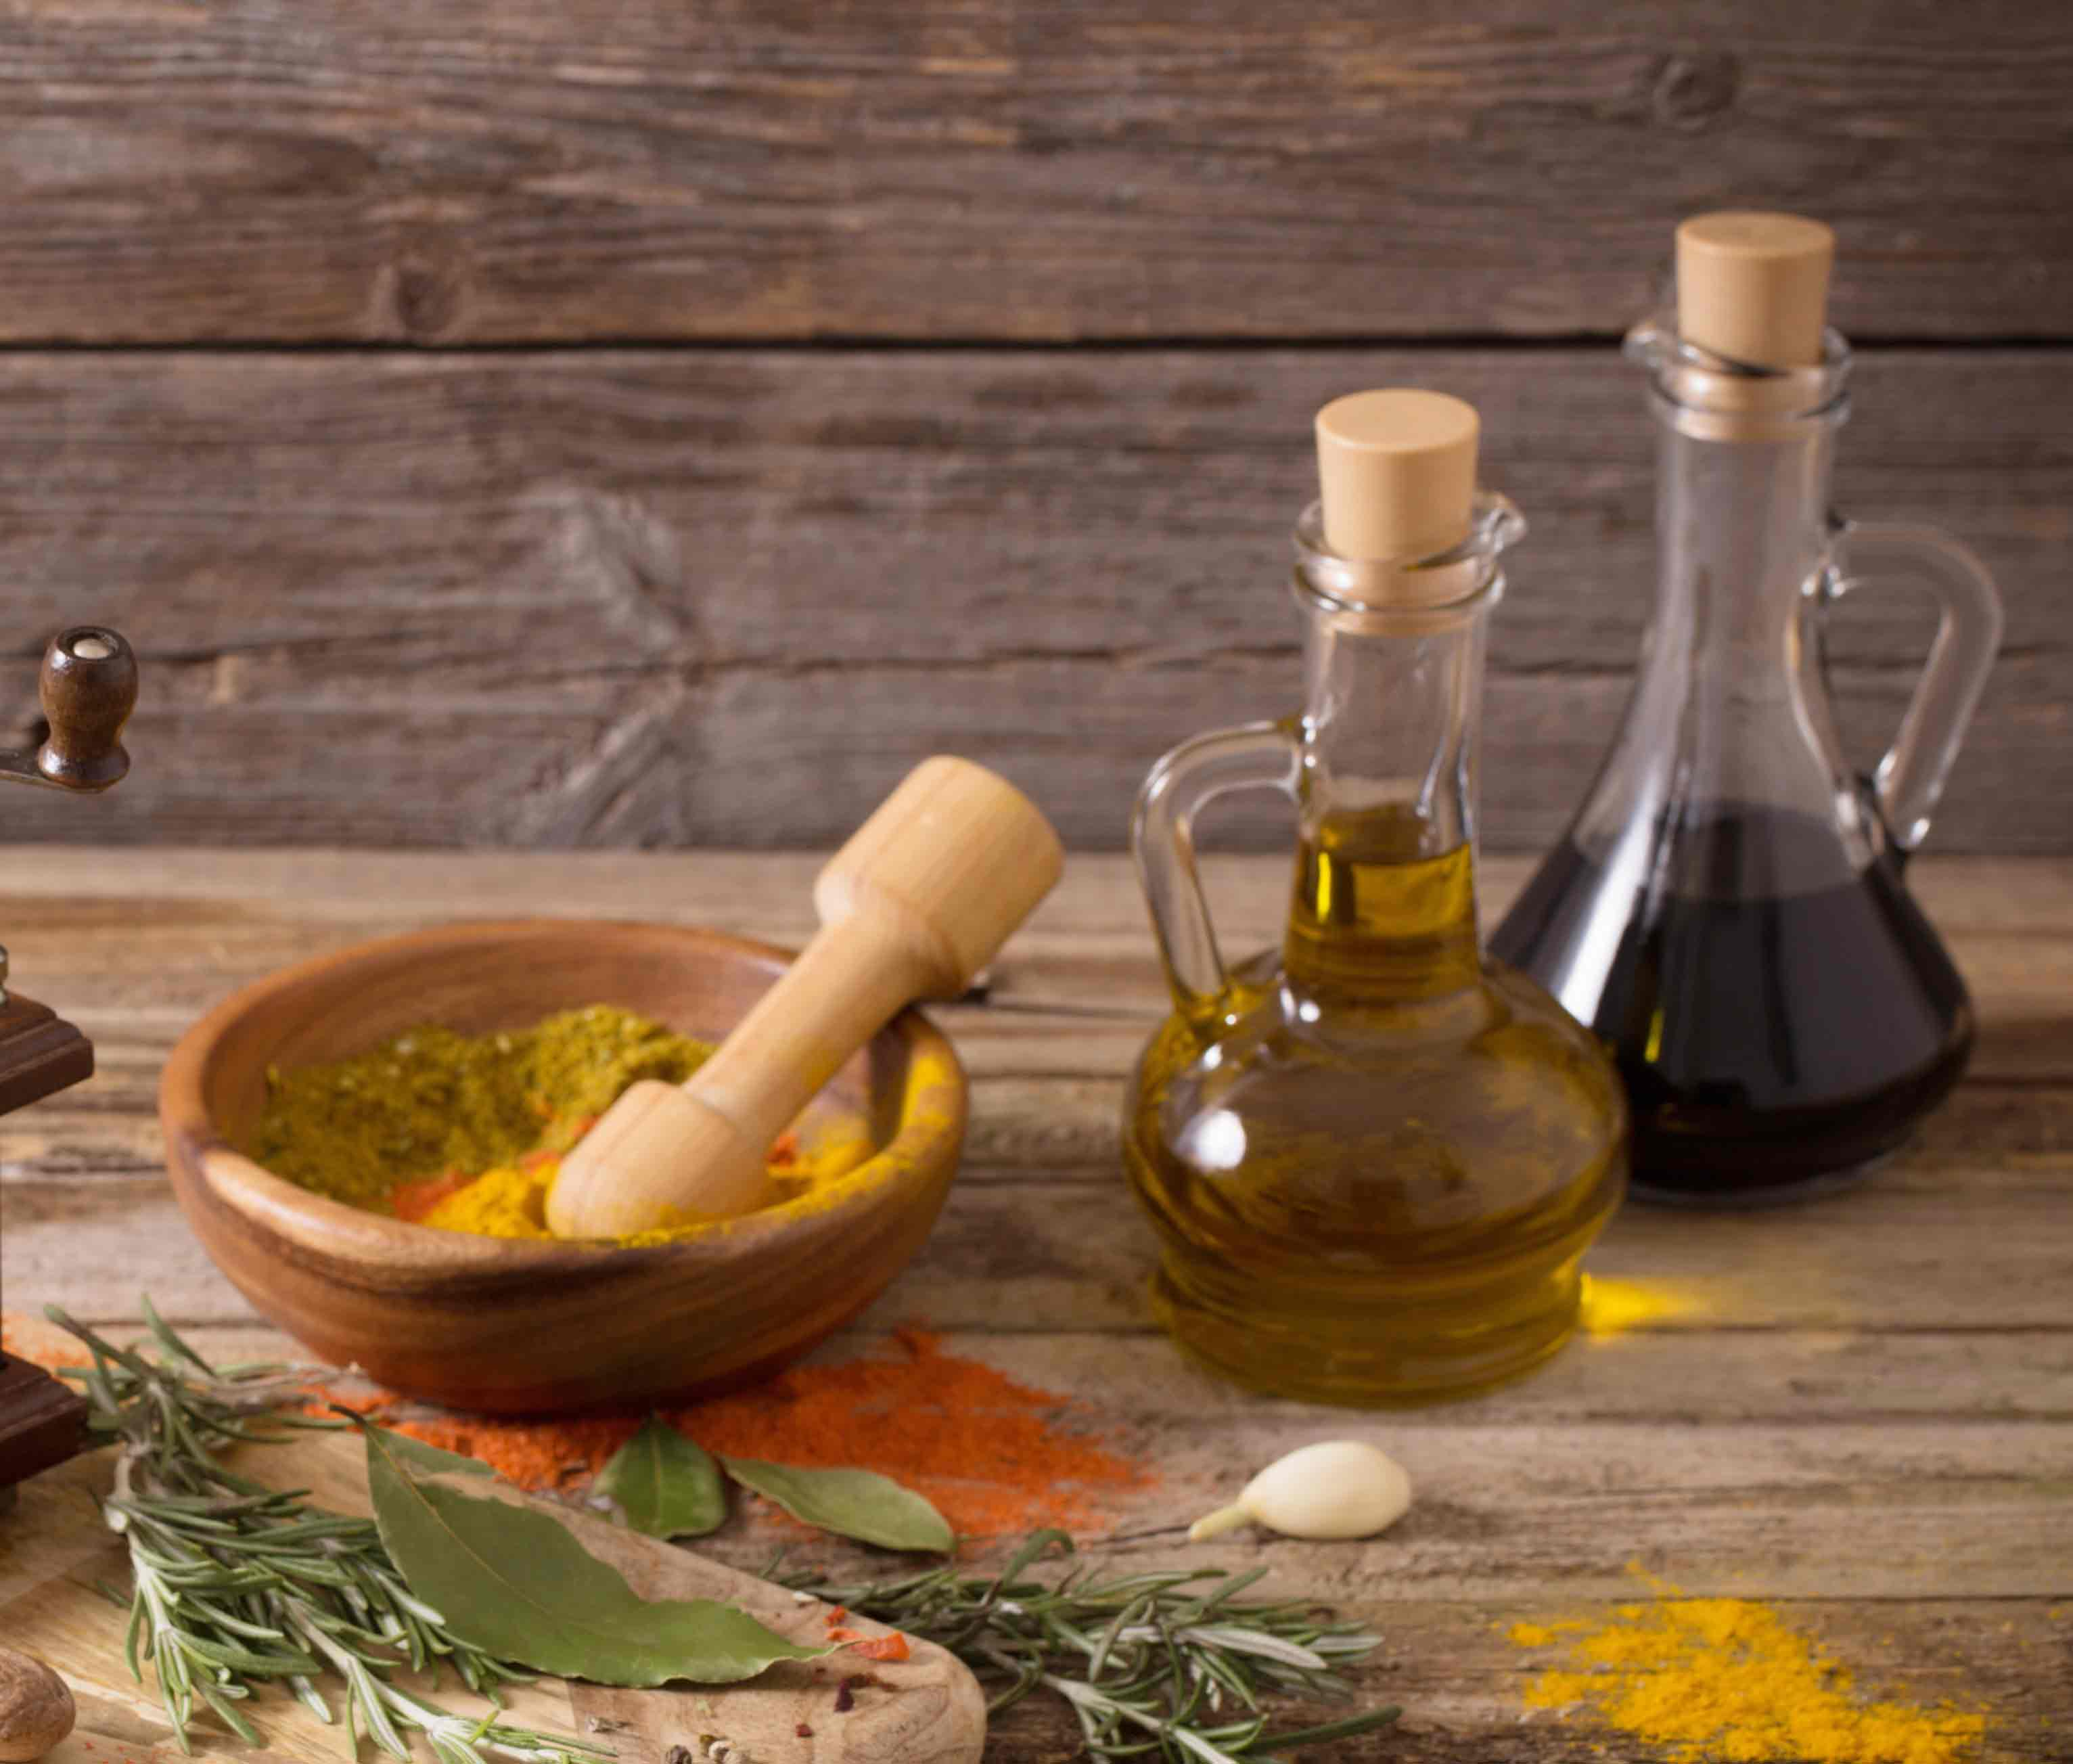 Homemade Curry oil